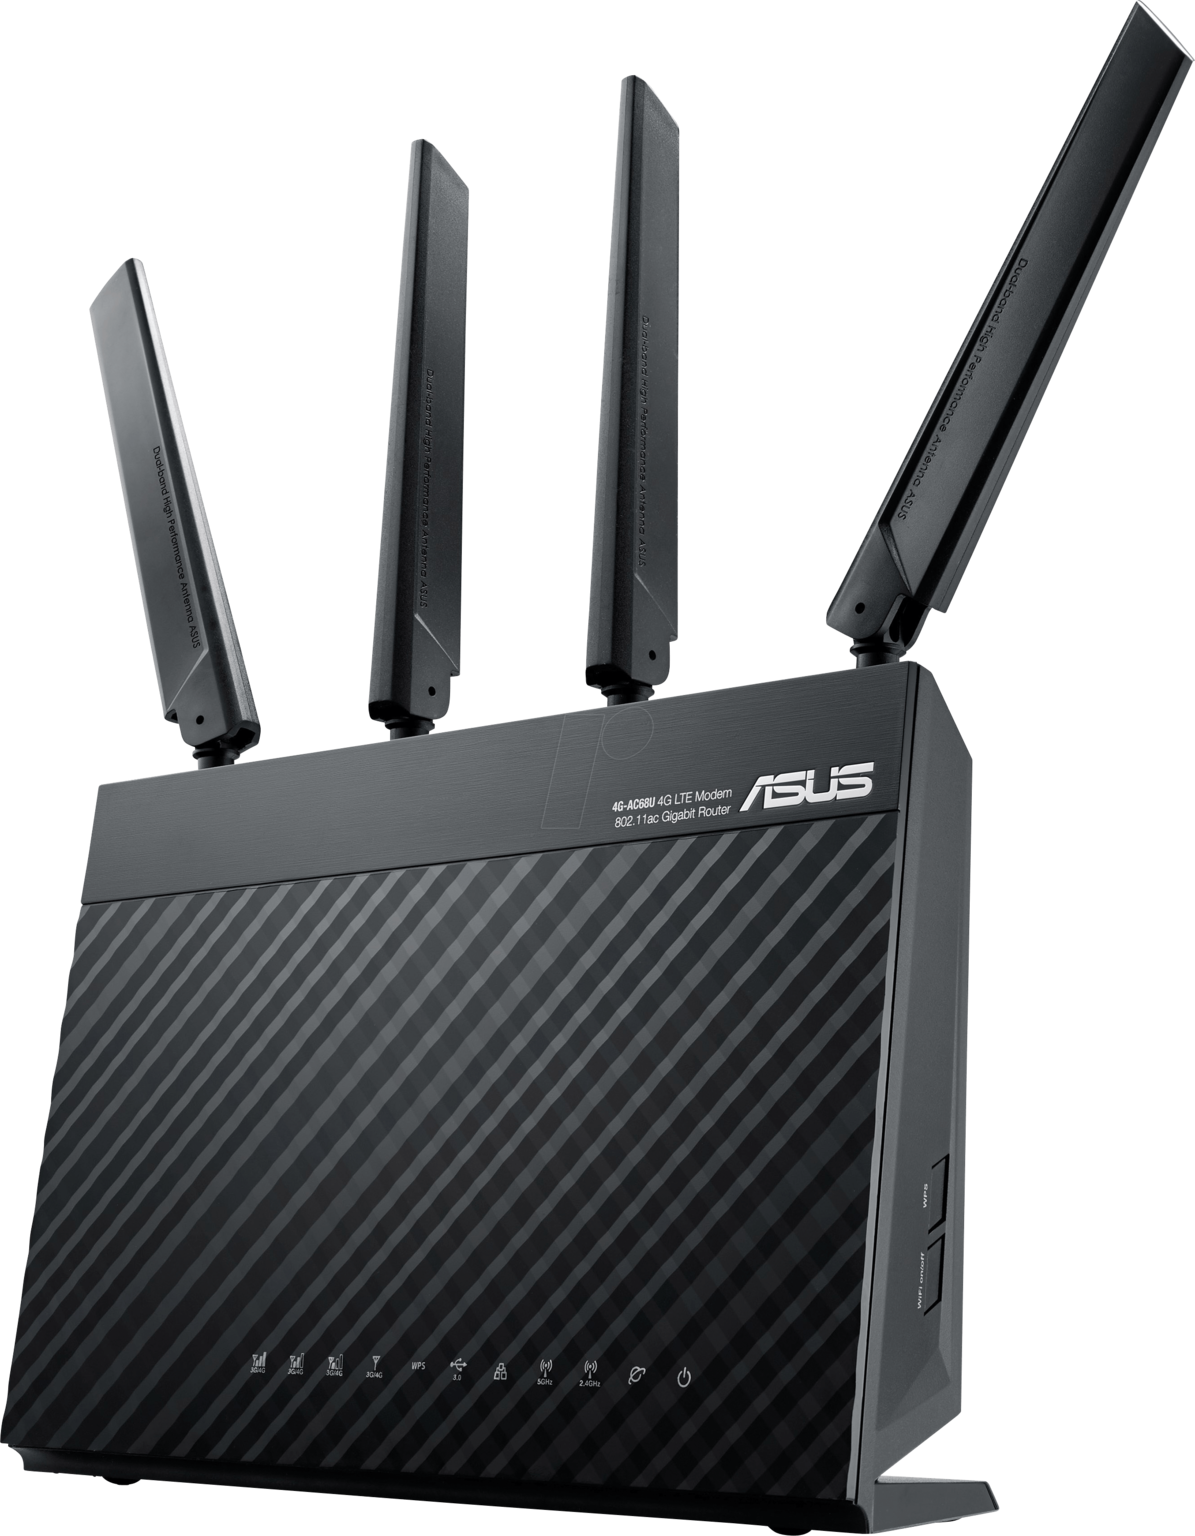 Asus 4G-AC68U 4G router